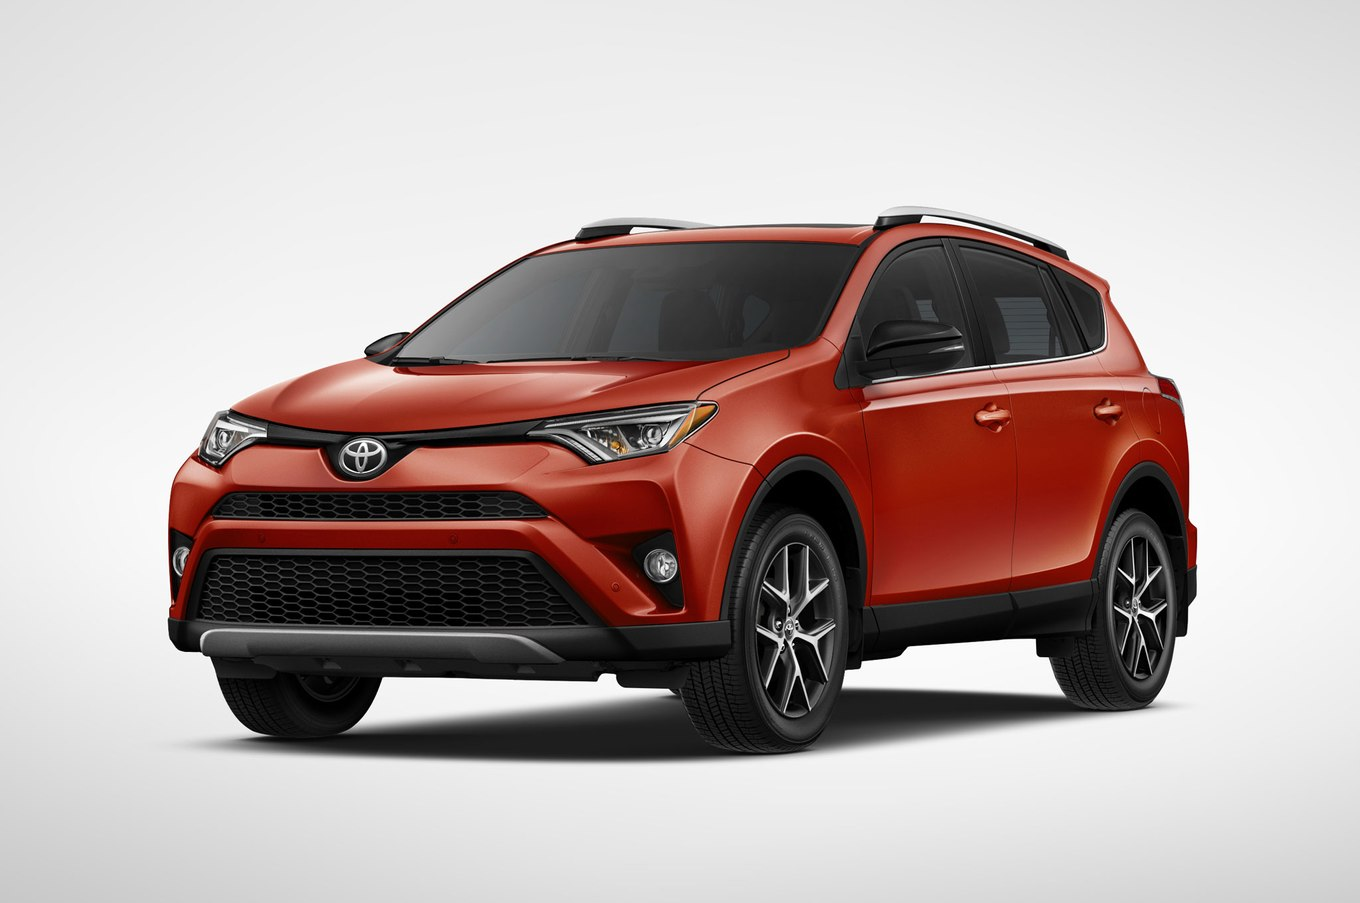 Toyota rav4 photo - 8